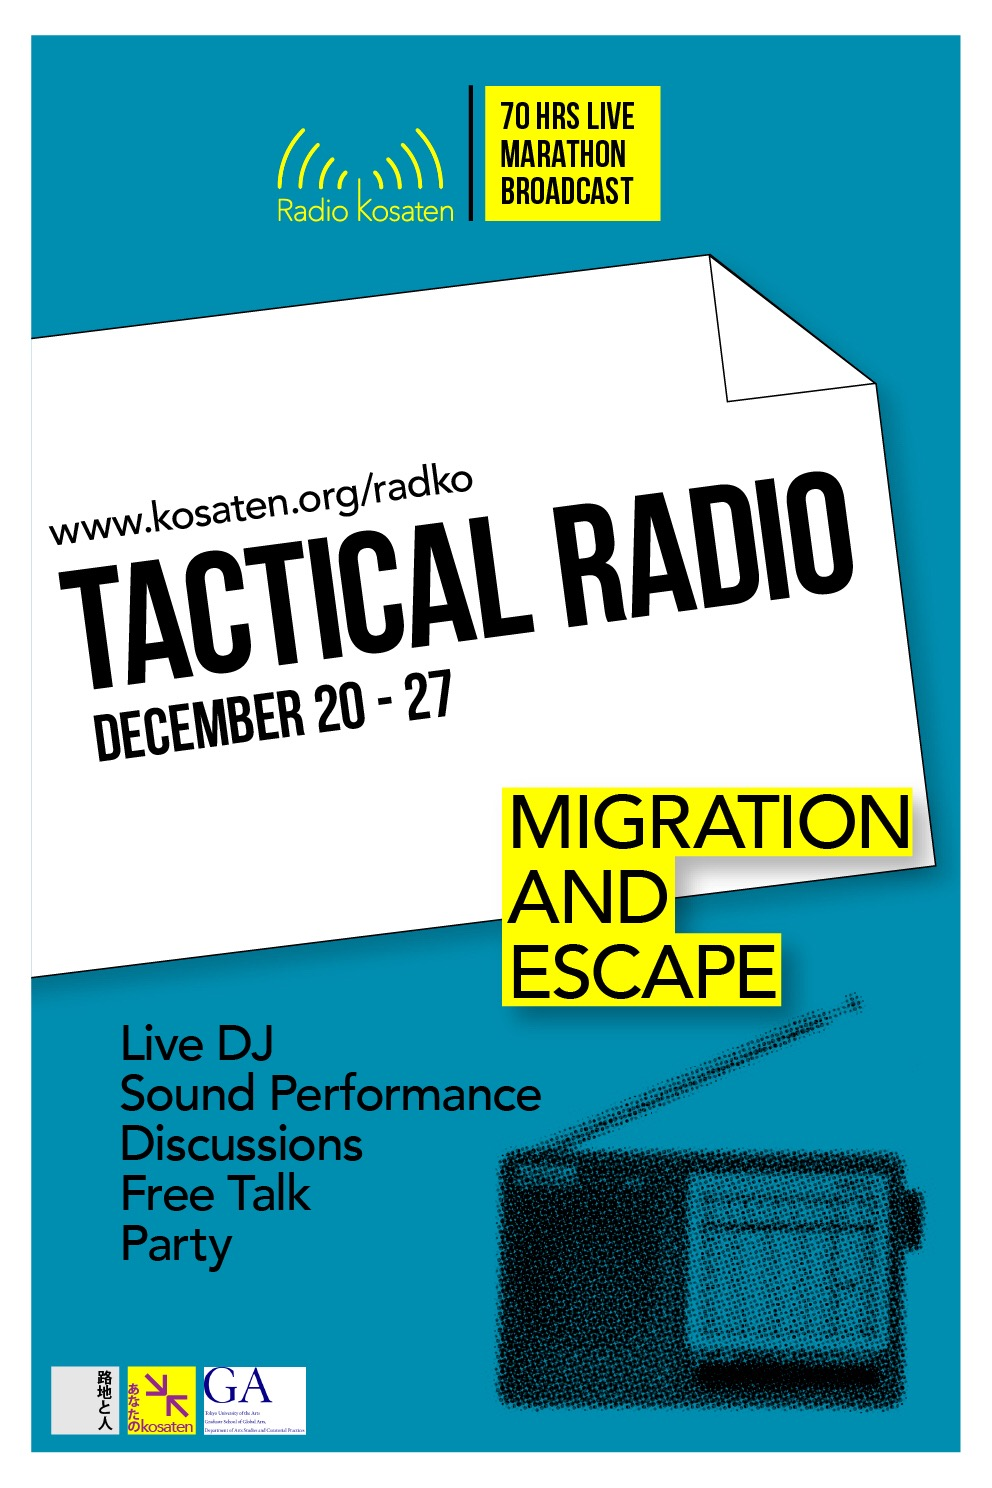 Jong Pairez Special Research ProjectTactical Radio Event: Migration And Escape